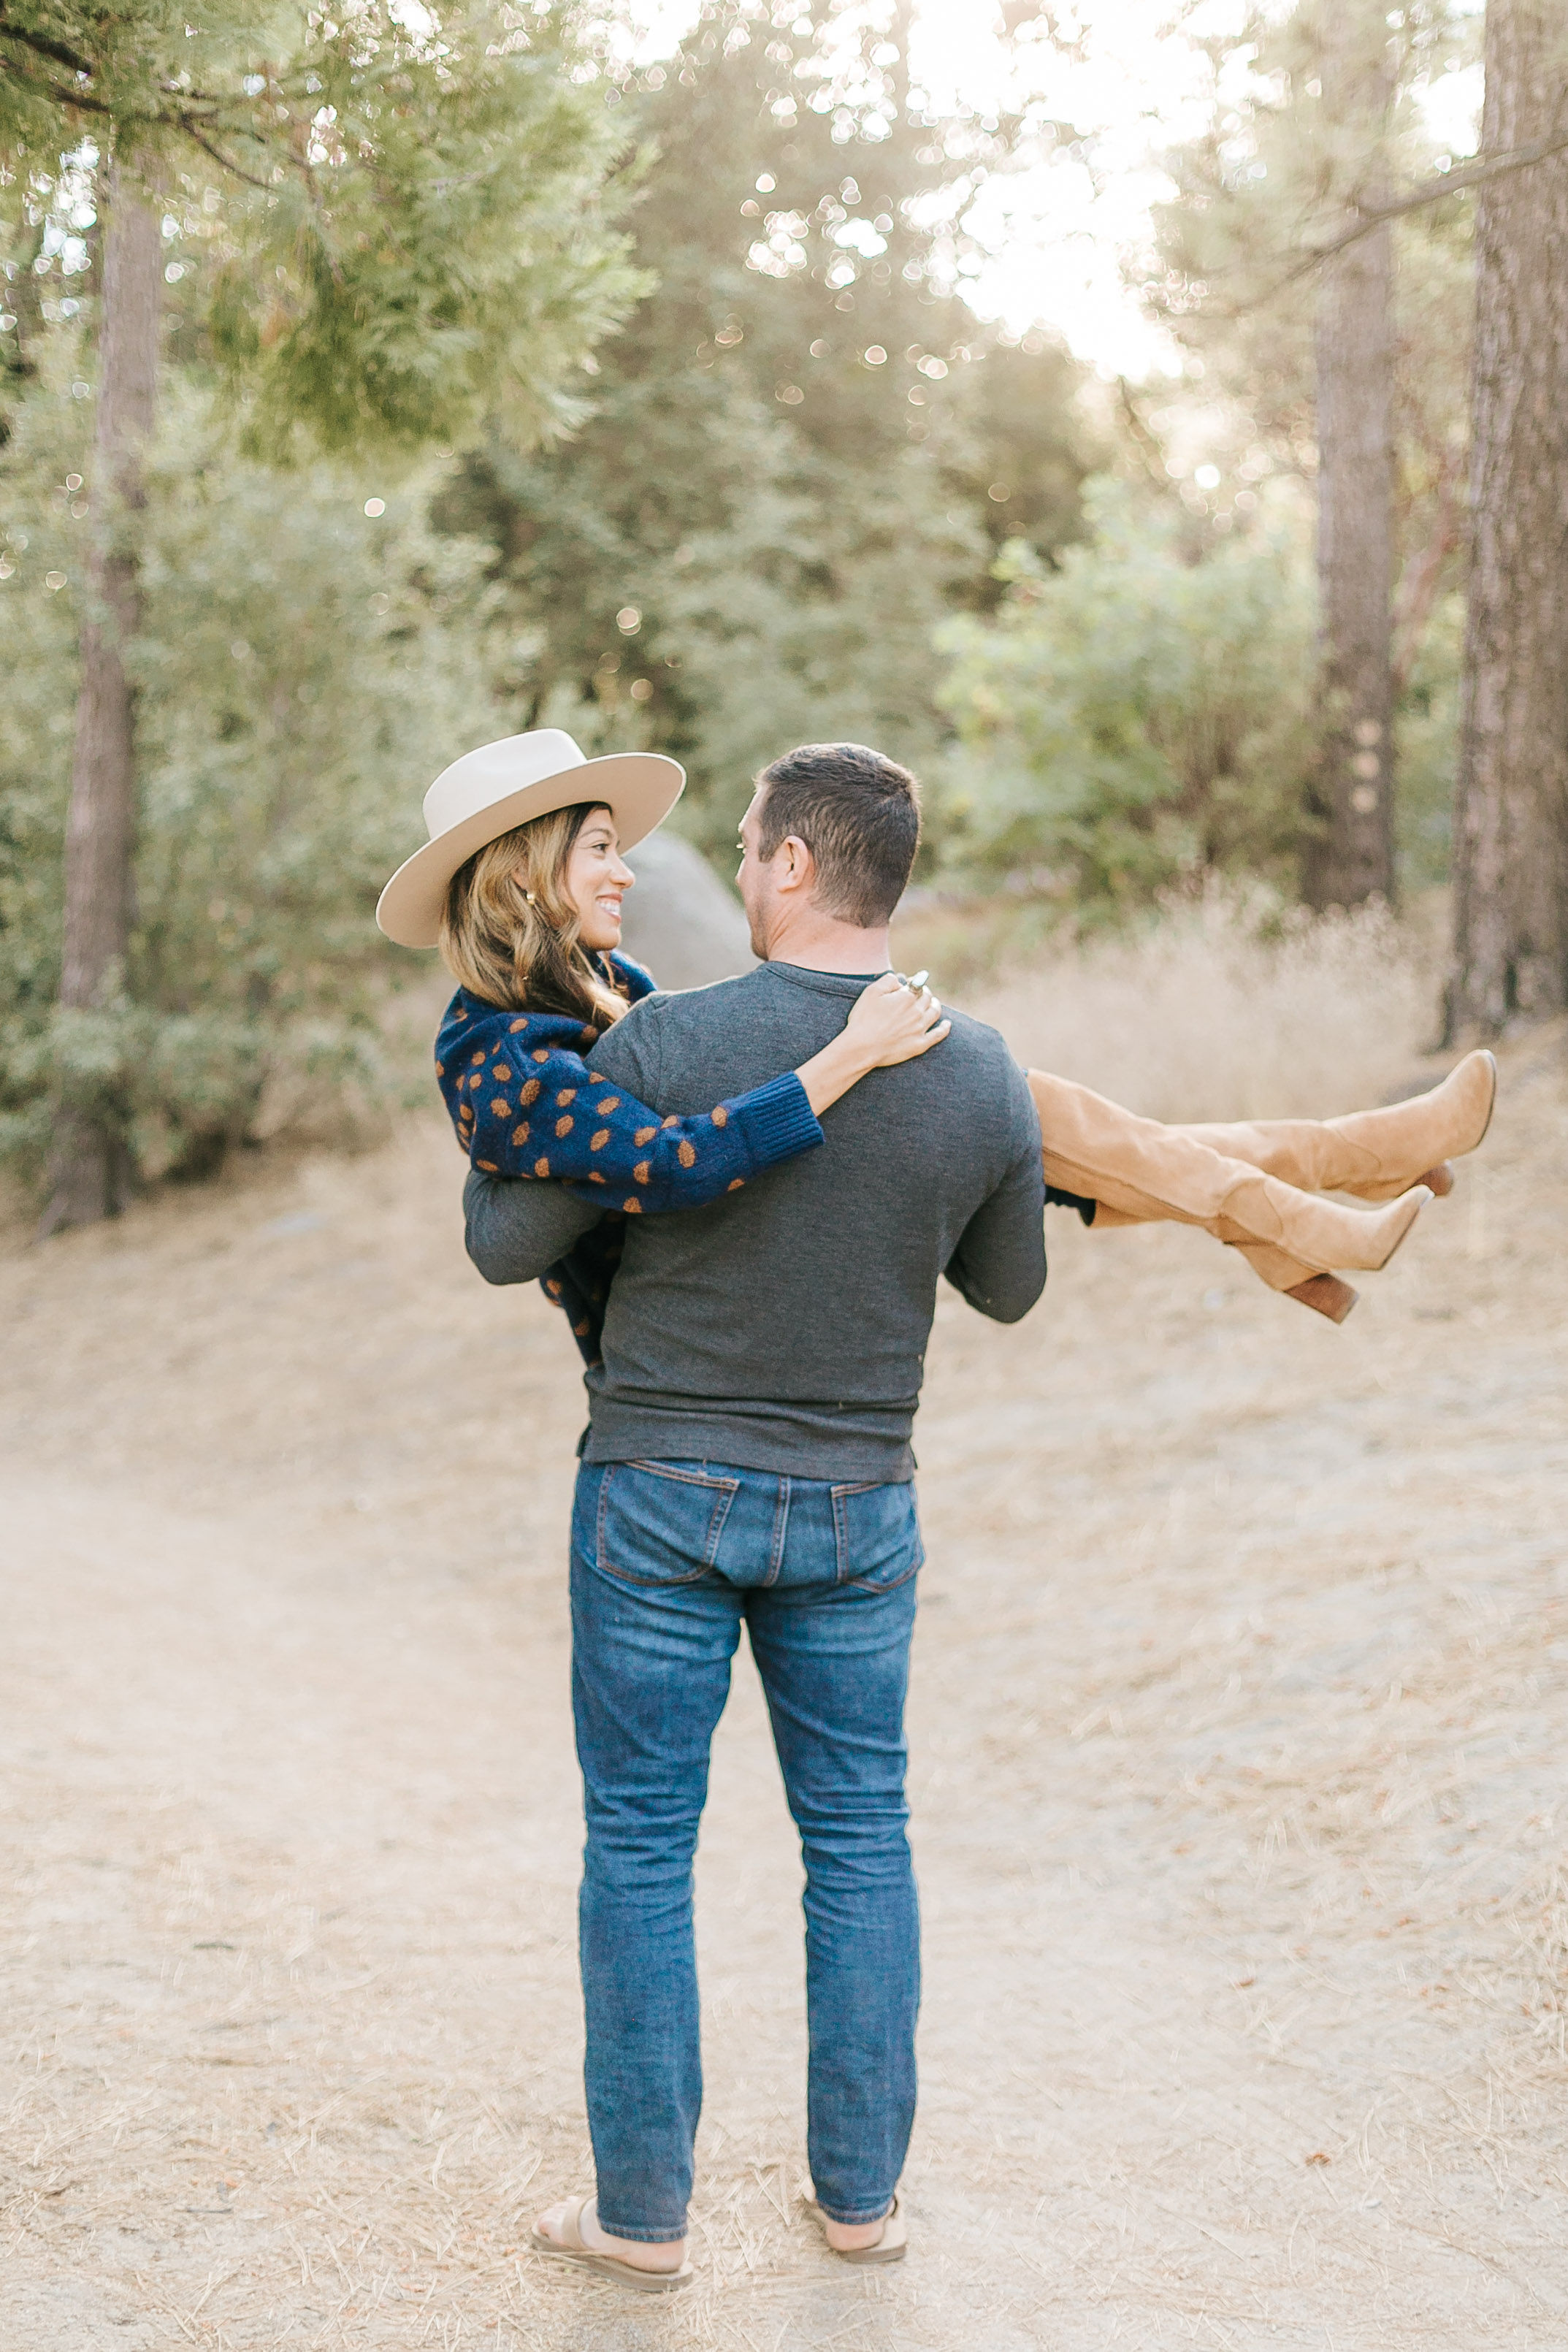 Idyllwild Engagement Session